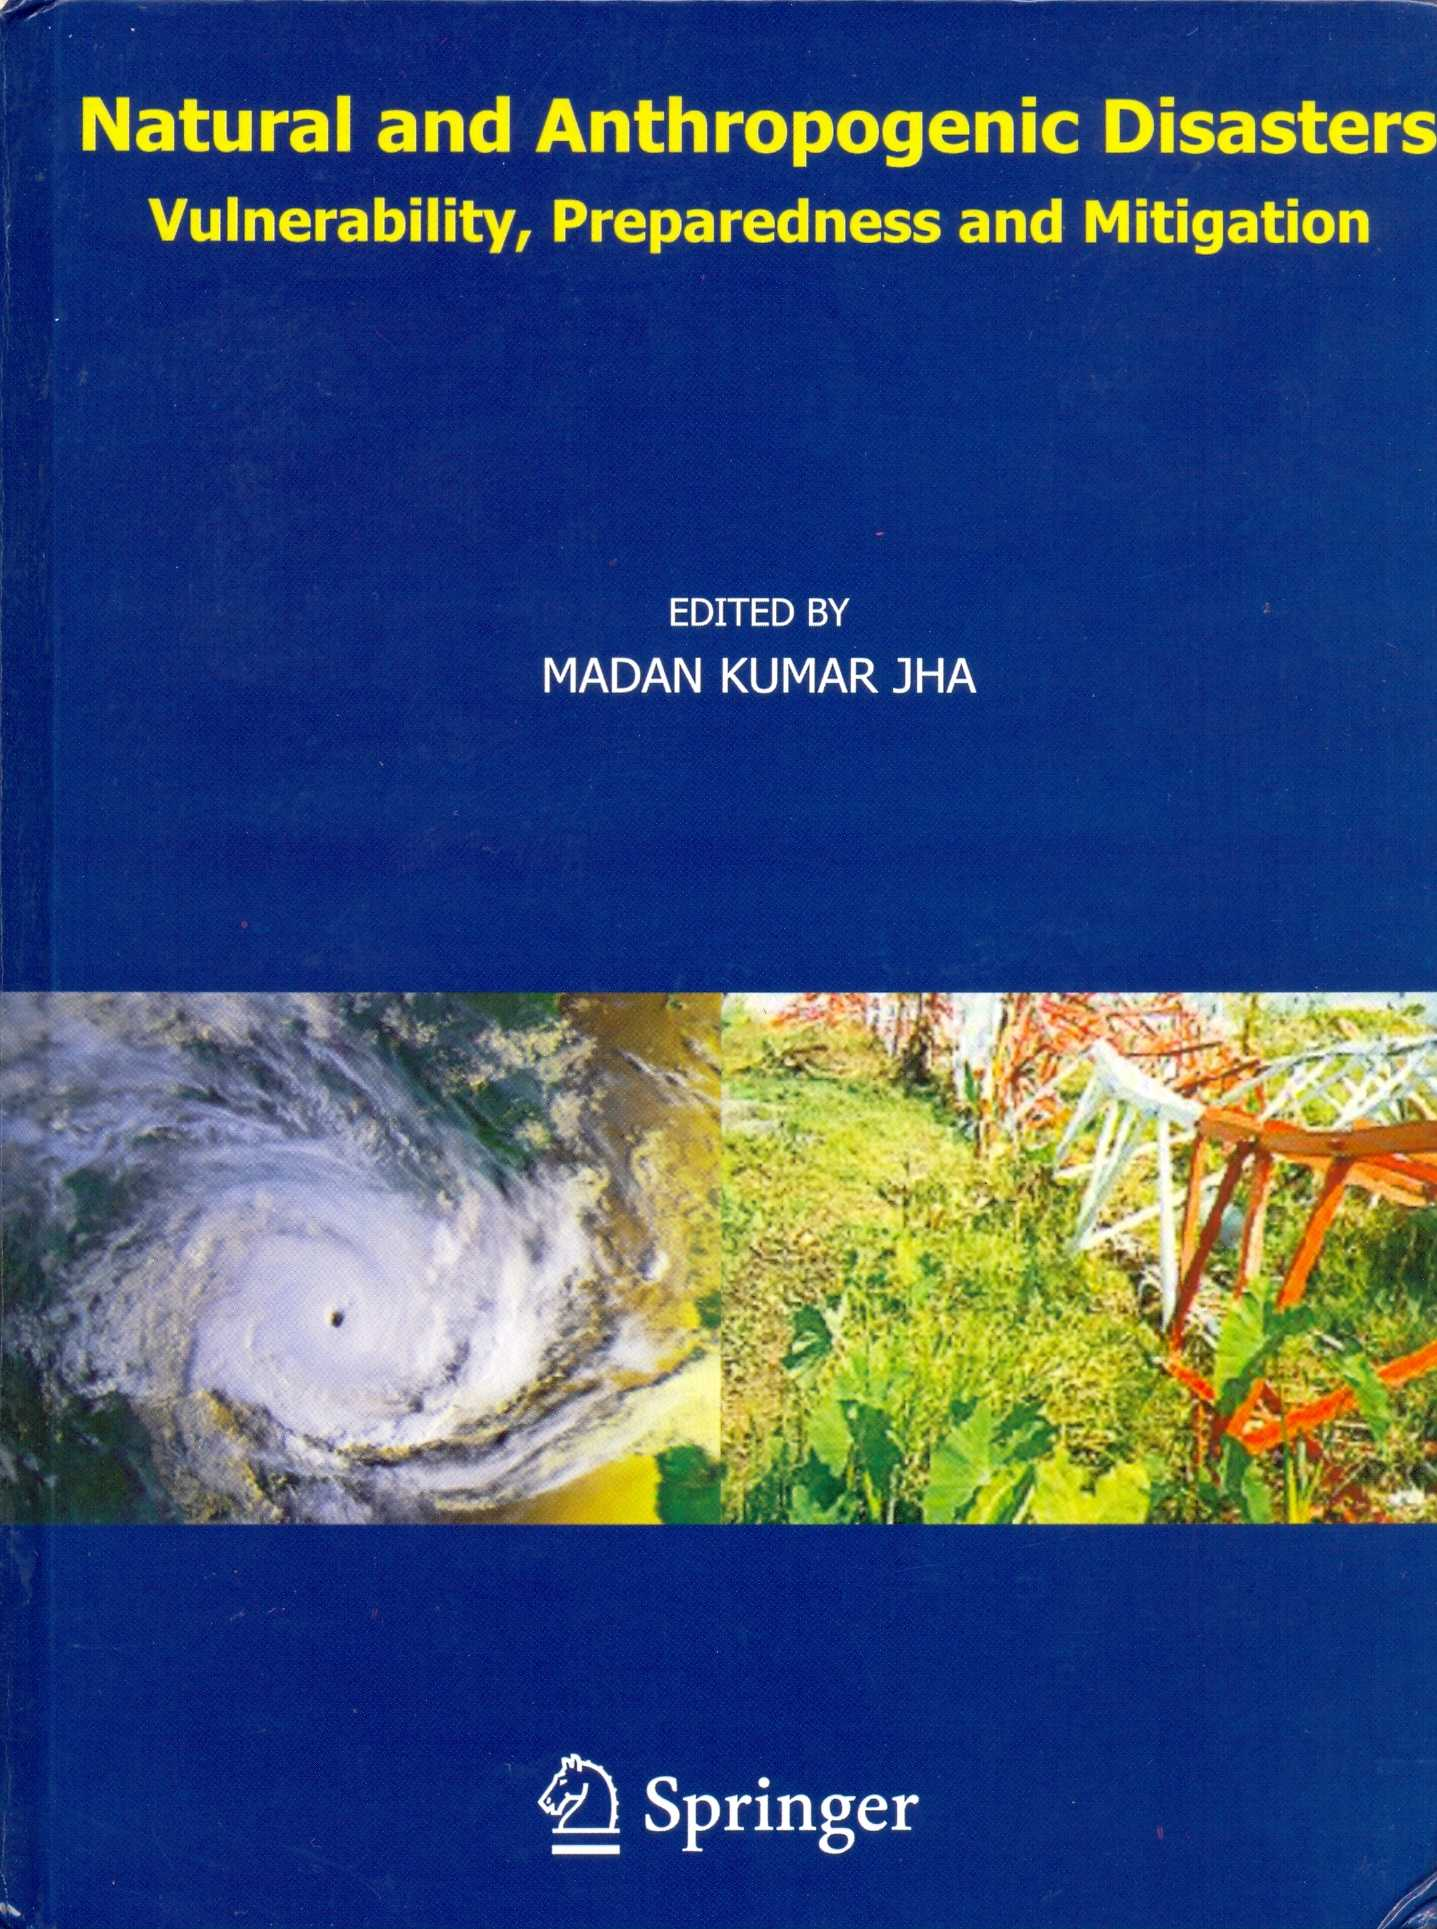 publications of prof d nagesh kumar book details book cover page jpeg 250 kb